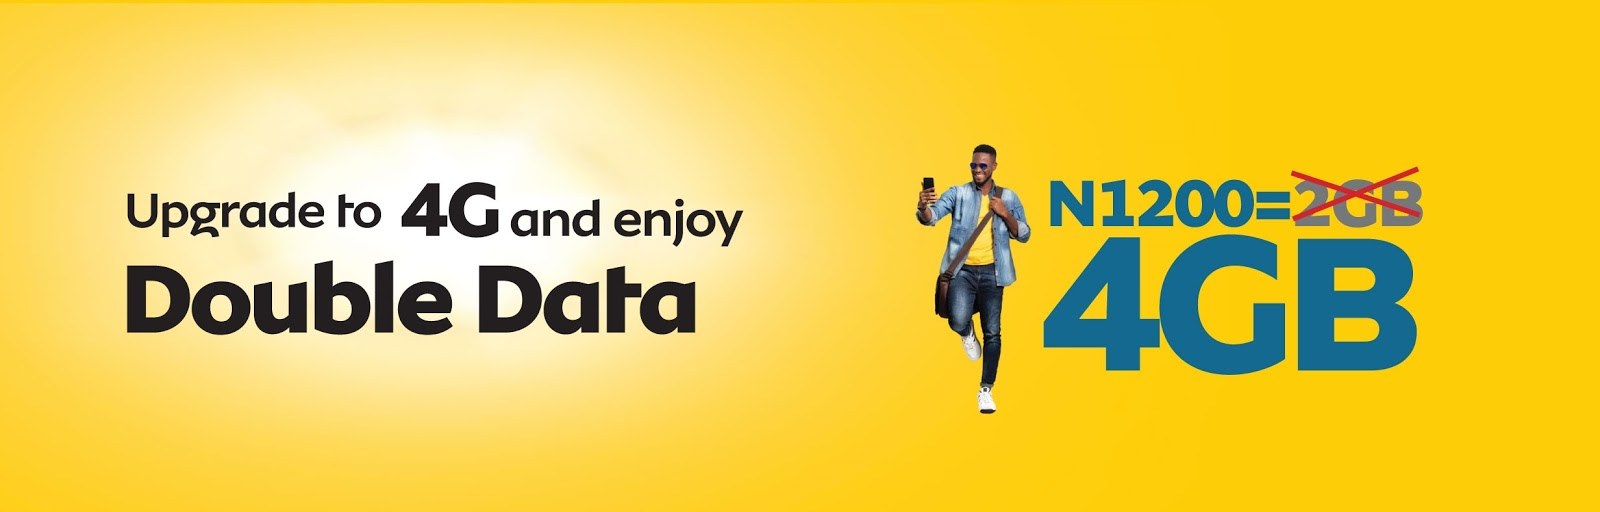 MTN LTE N1200 for 4gb: See how